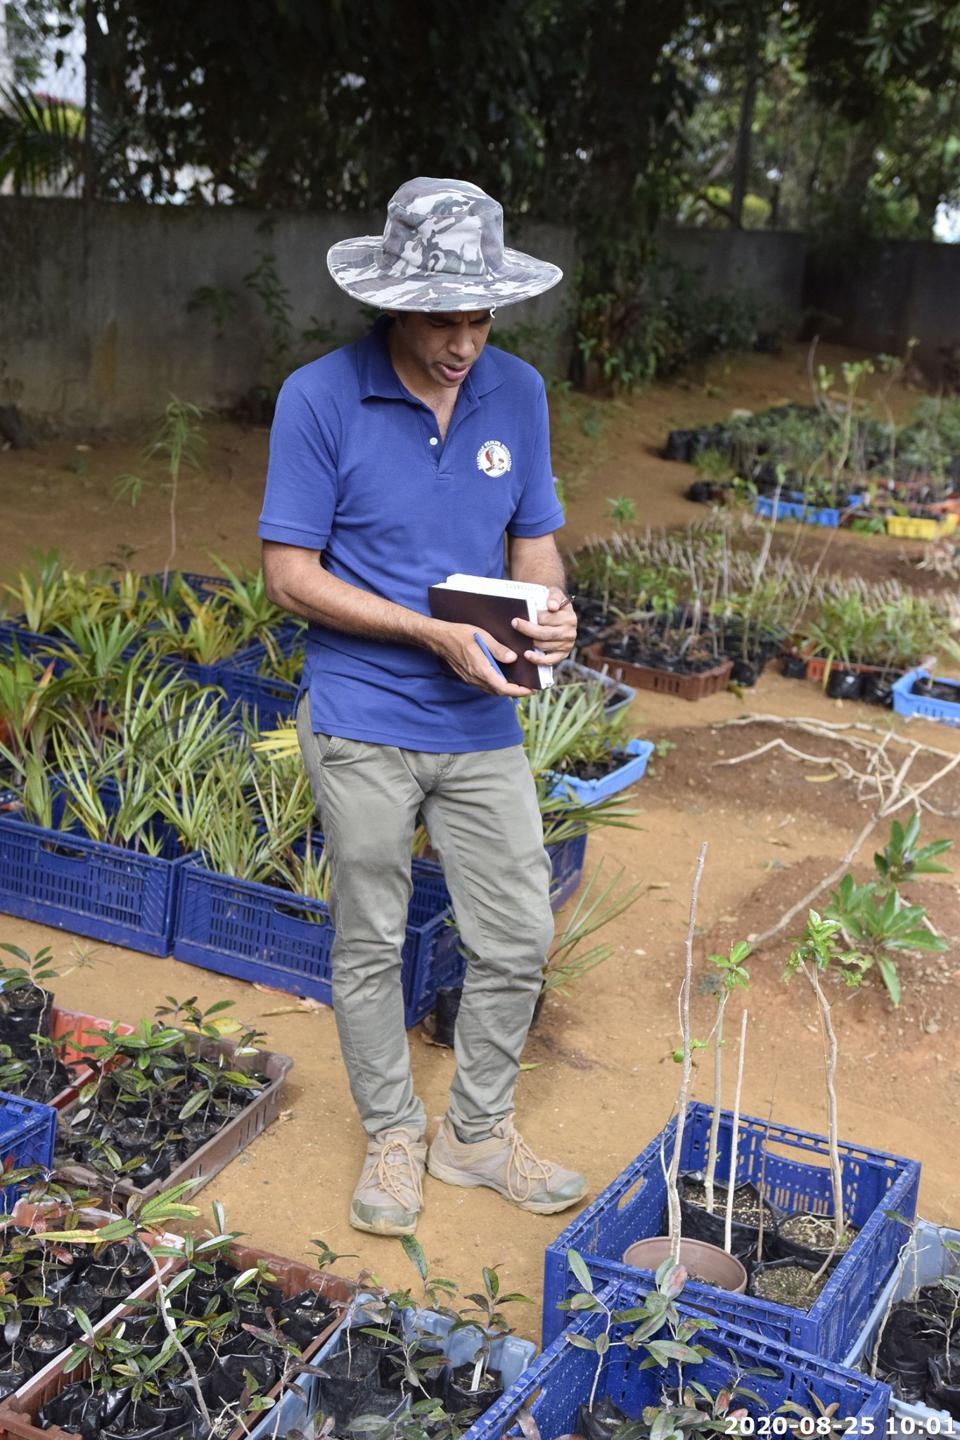 25 Aug 2020: careful monitoring of the growth of all the plants following the transfer, takes place on a regular basis